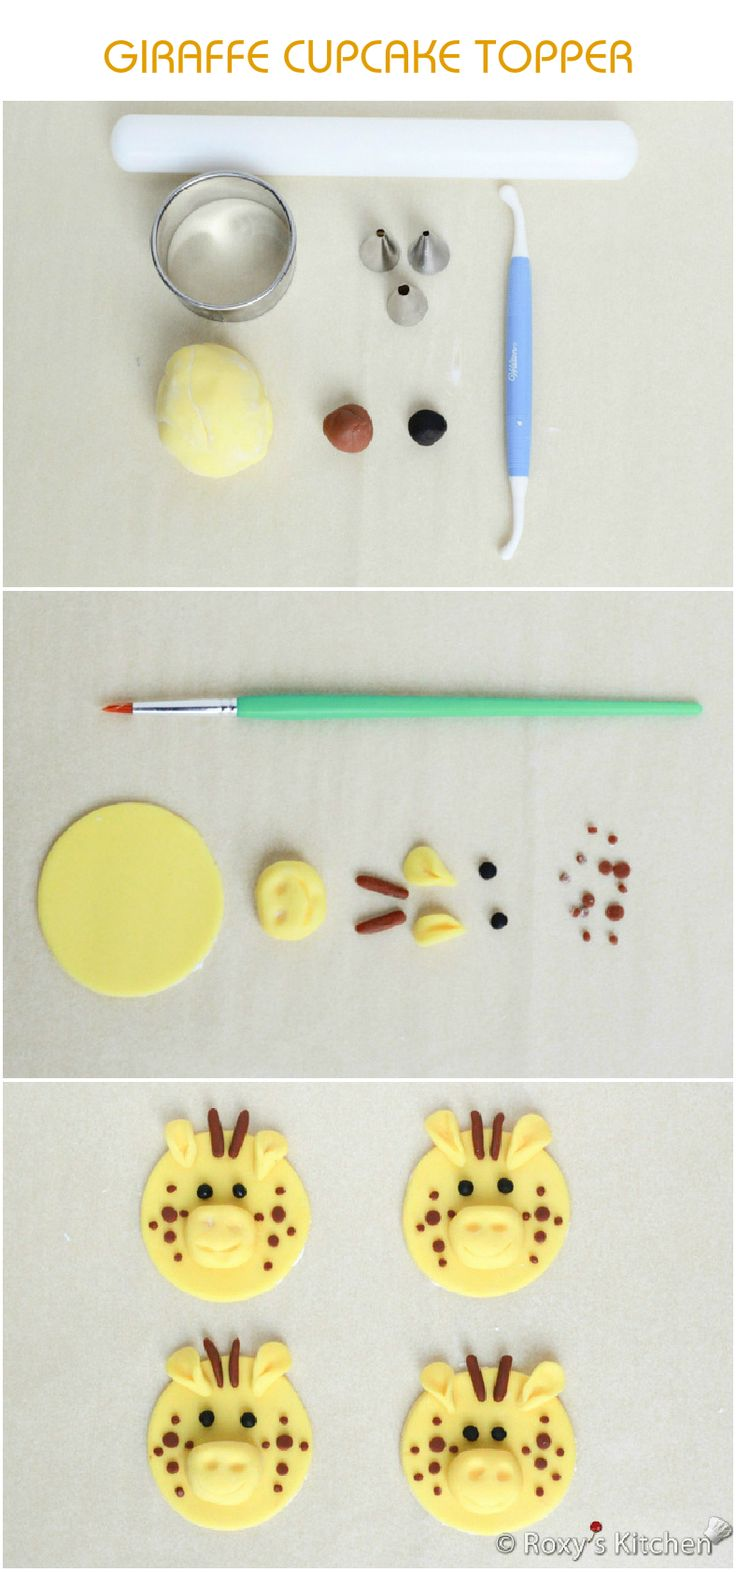 Tutorial with Step by Step Instructions & Photos - How to Make a Fondant Giraffe Cupcake Topper / Safari Jungle Animals Birthday Party